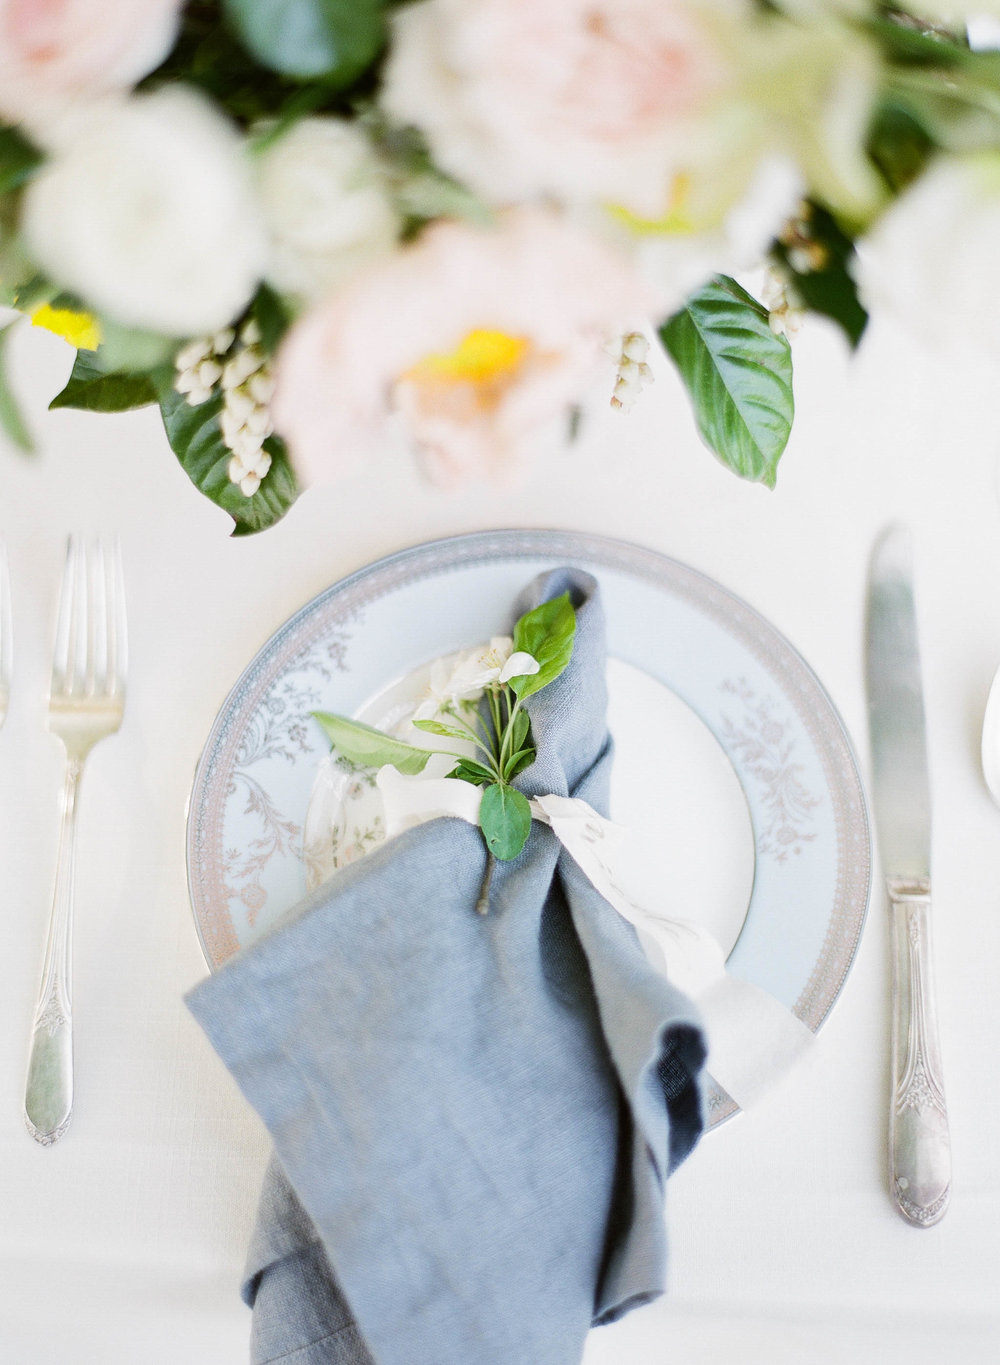 Trying to wrap this up nicely and hopefully give you a little bit more will power for your venture! Photography by Jennifer Kulakowski with planning by Linda Ha Events & Designs.